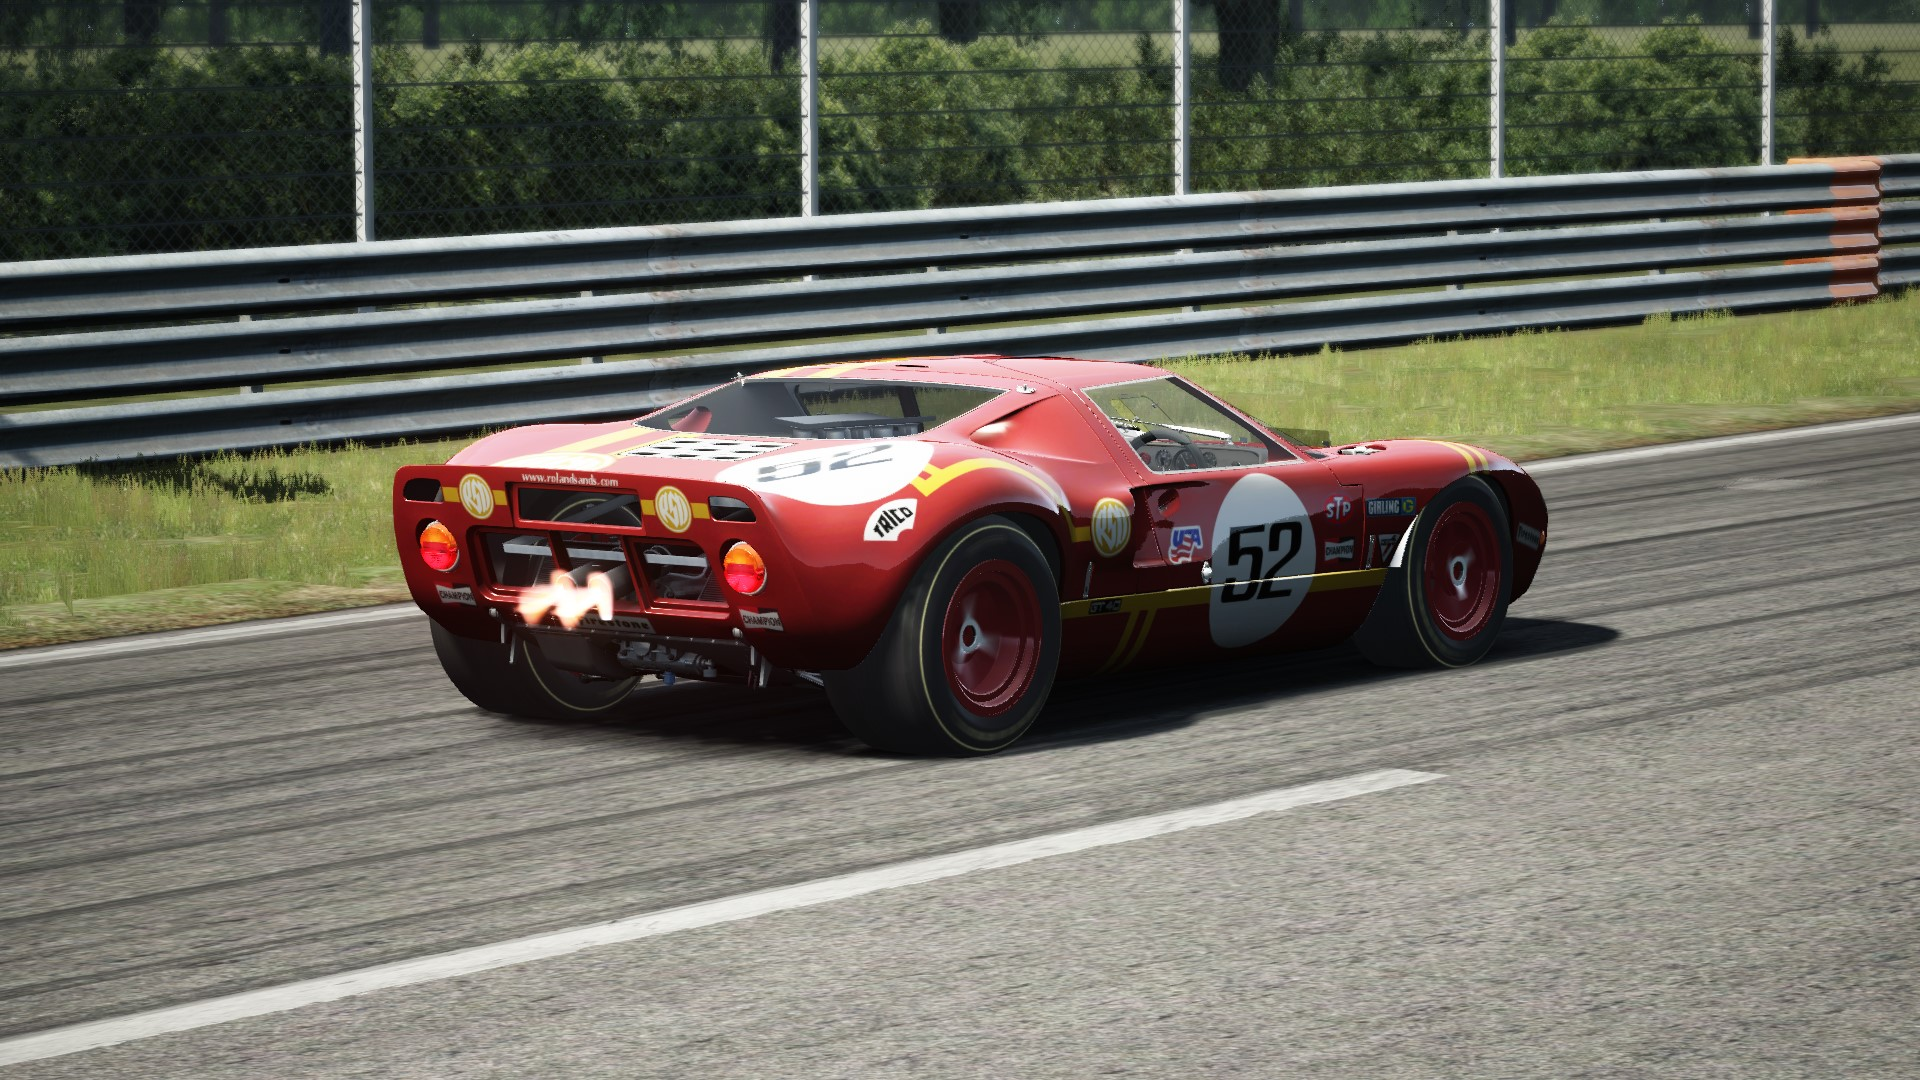 Screenshot_ks_ford_gt40_monza_26-10-115-11-55-44.jpg